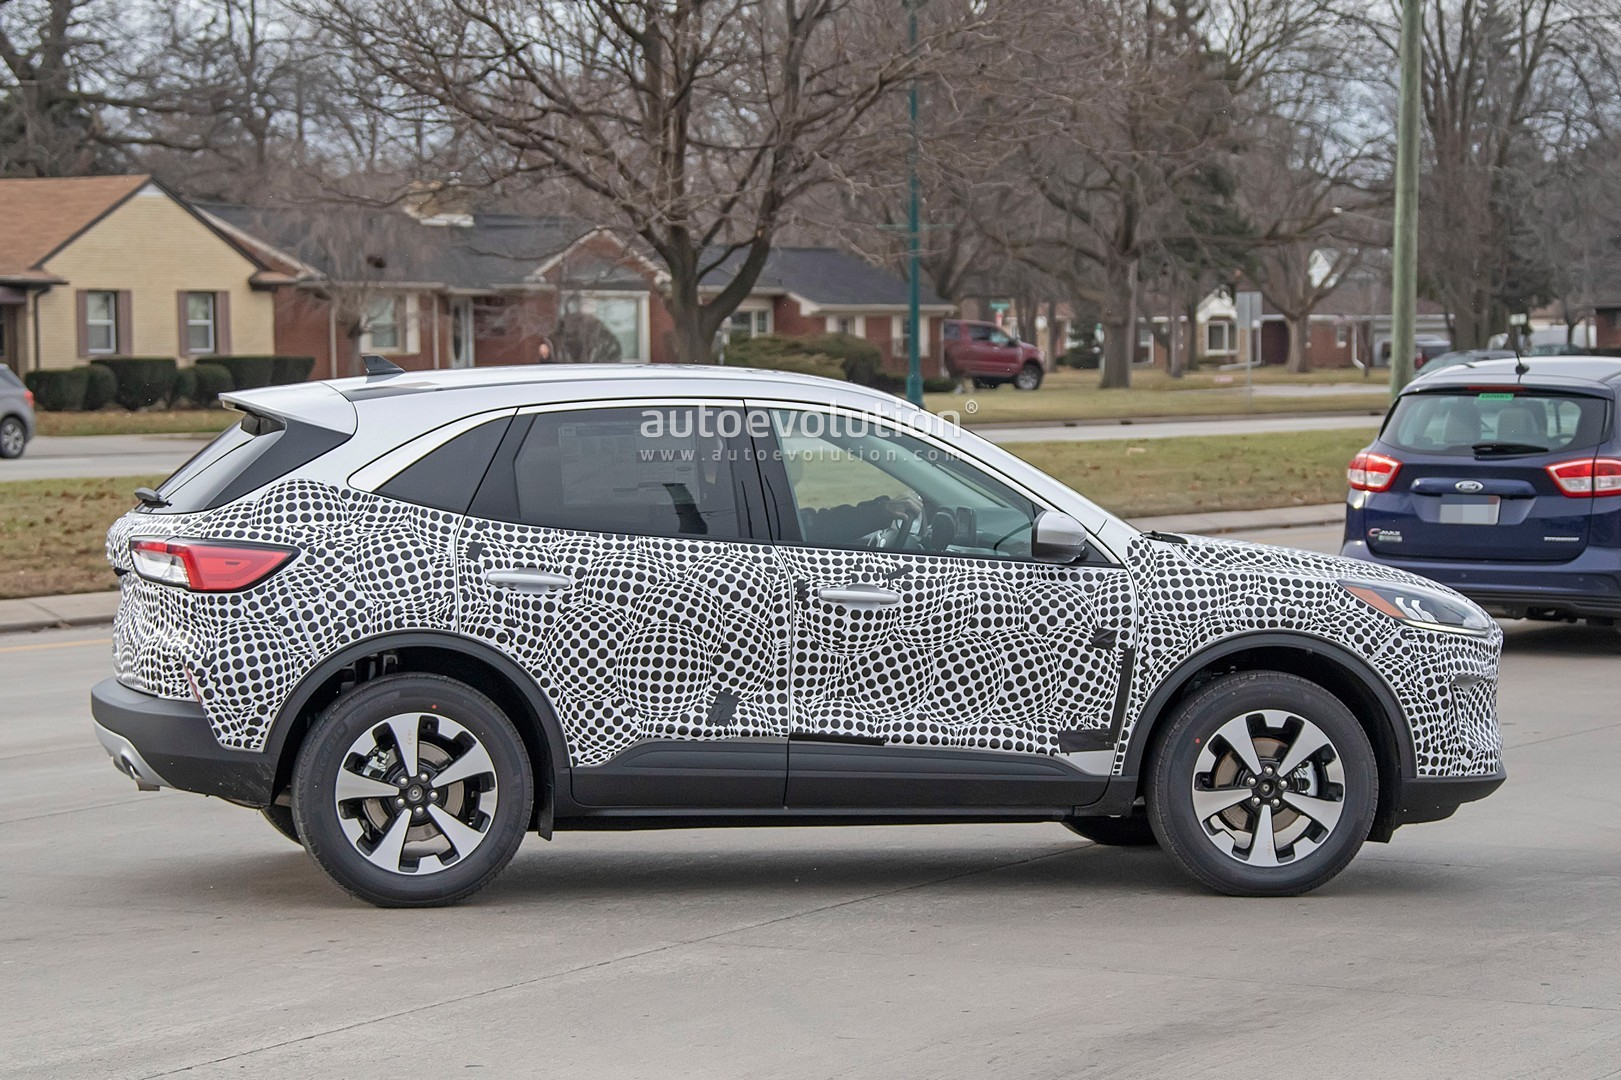 Ford Escape Kuga Spied With Production Body Looks Like Jaguar Focus